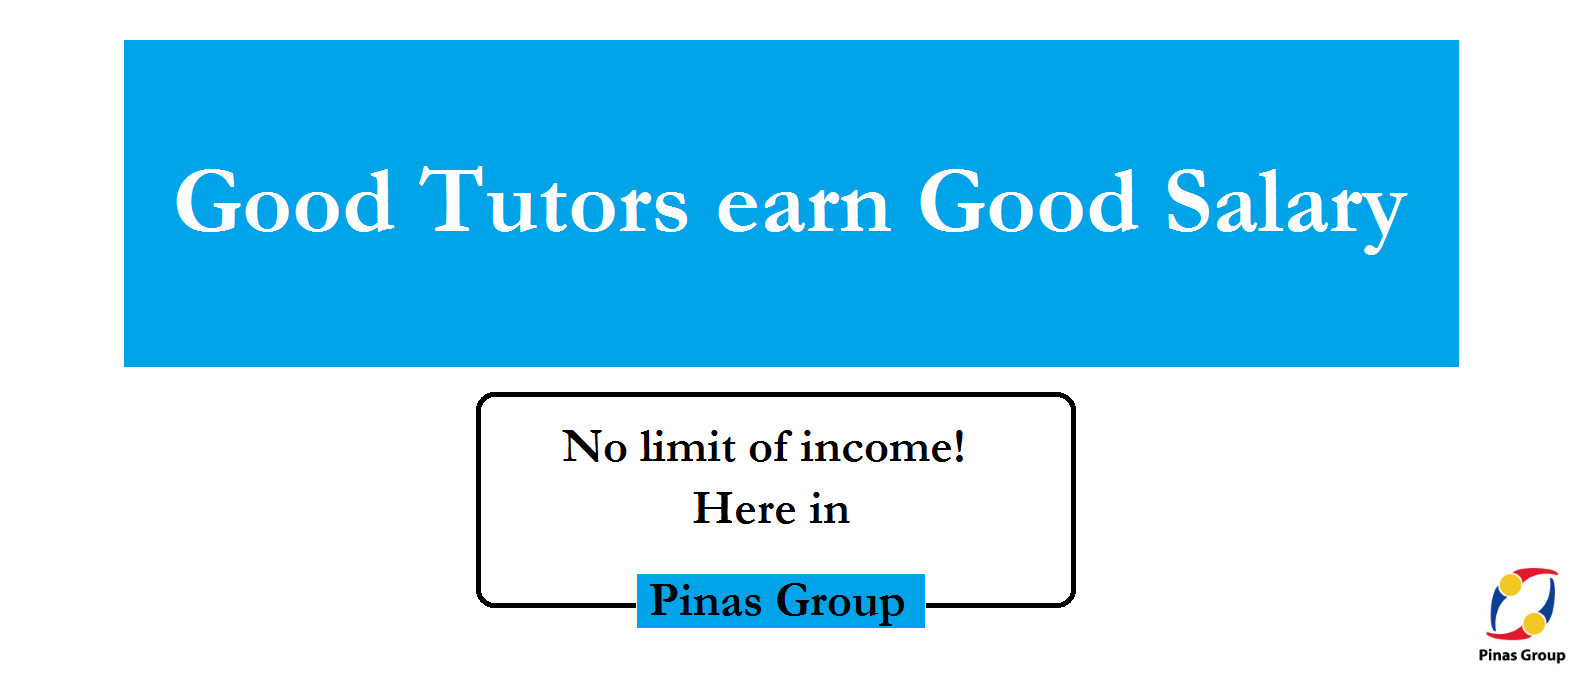 Good Tutors earn Good Salary!